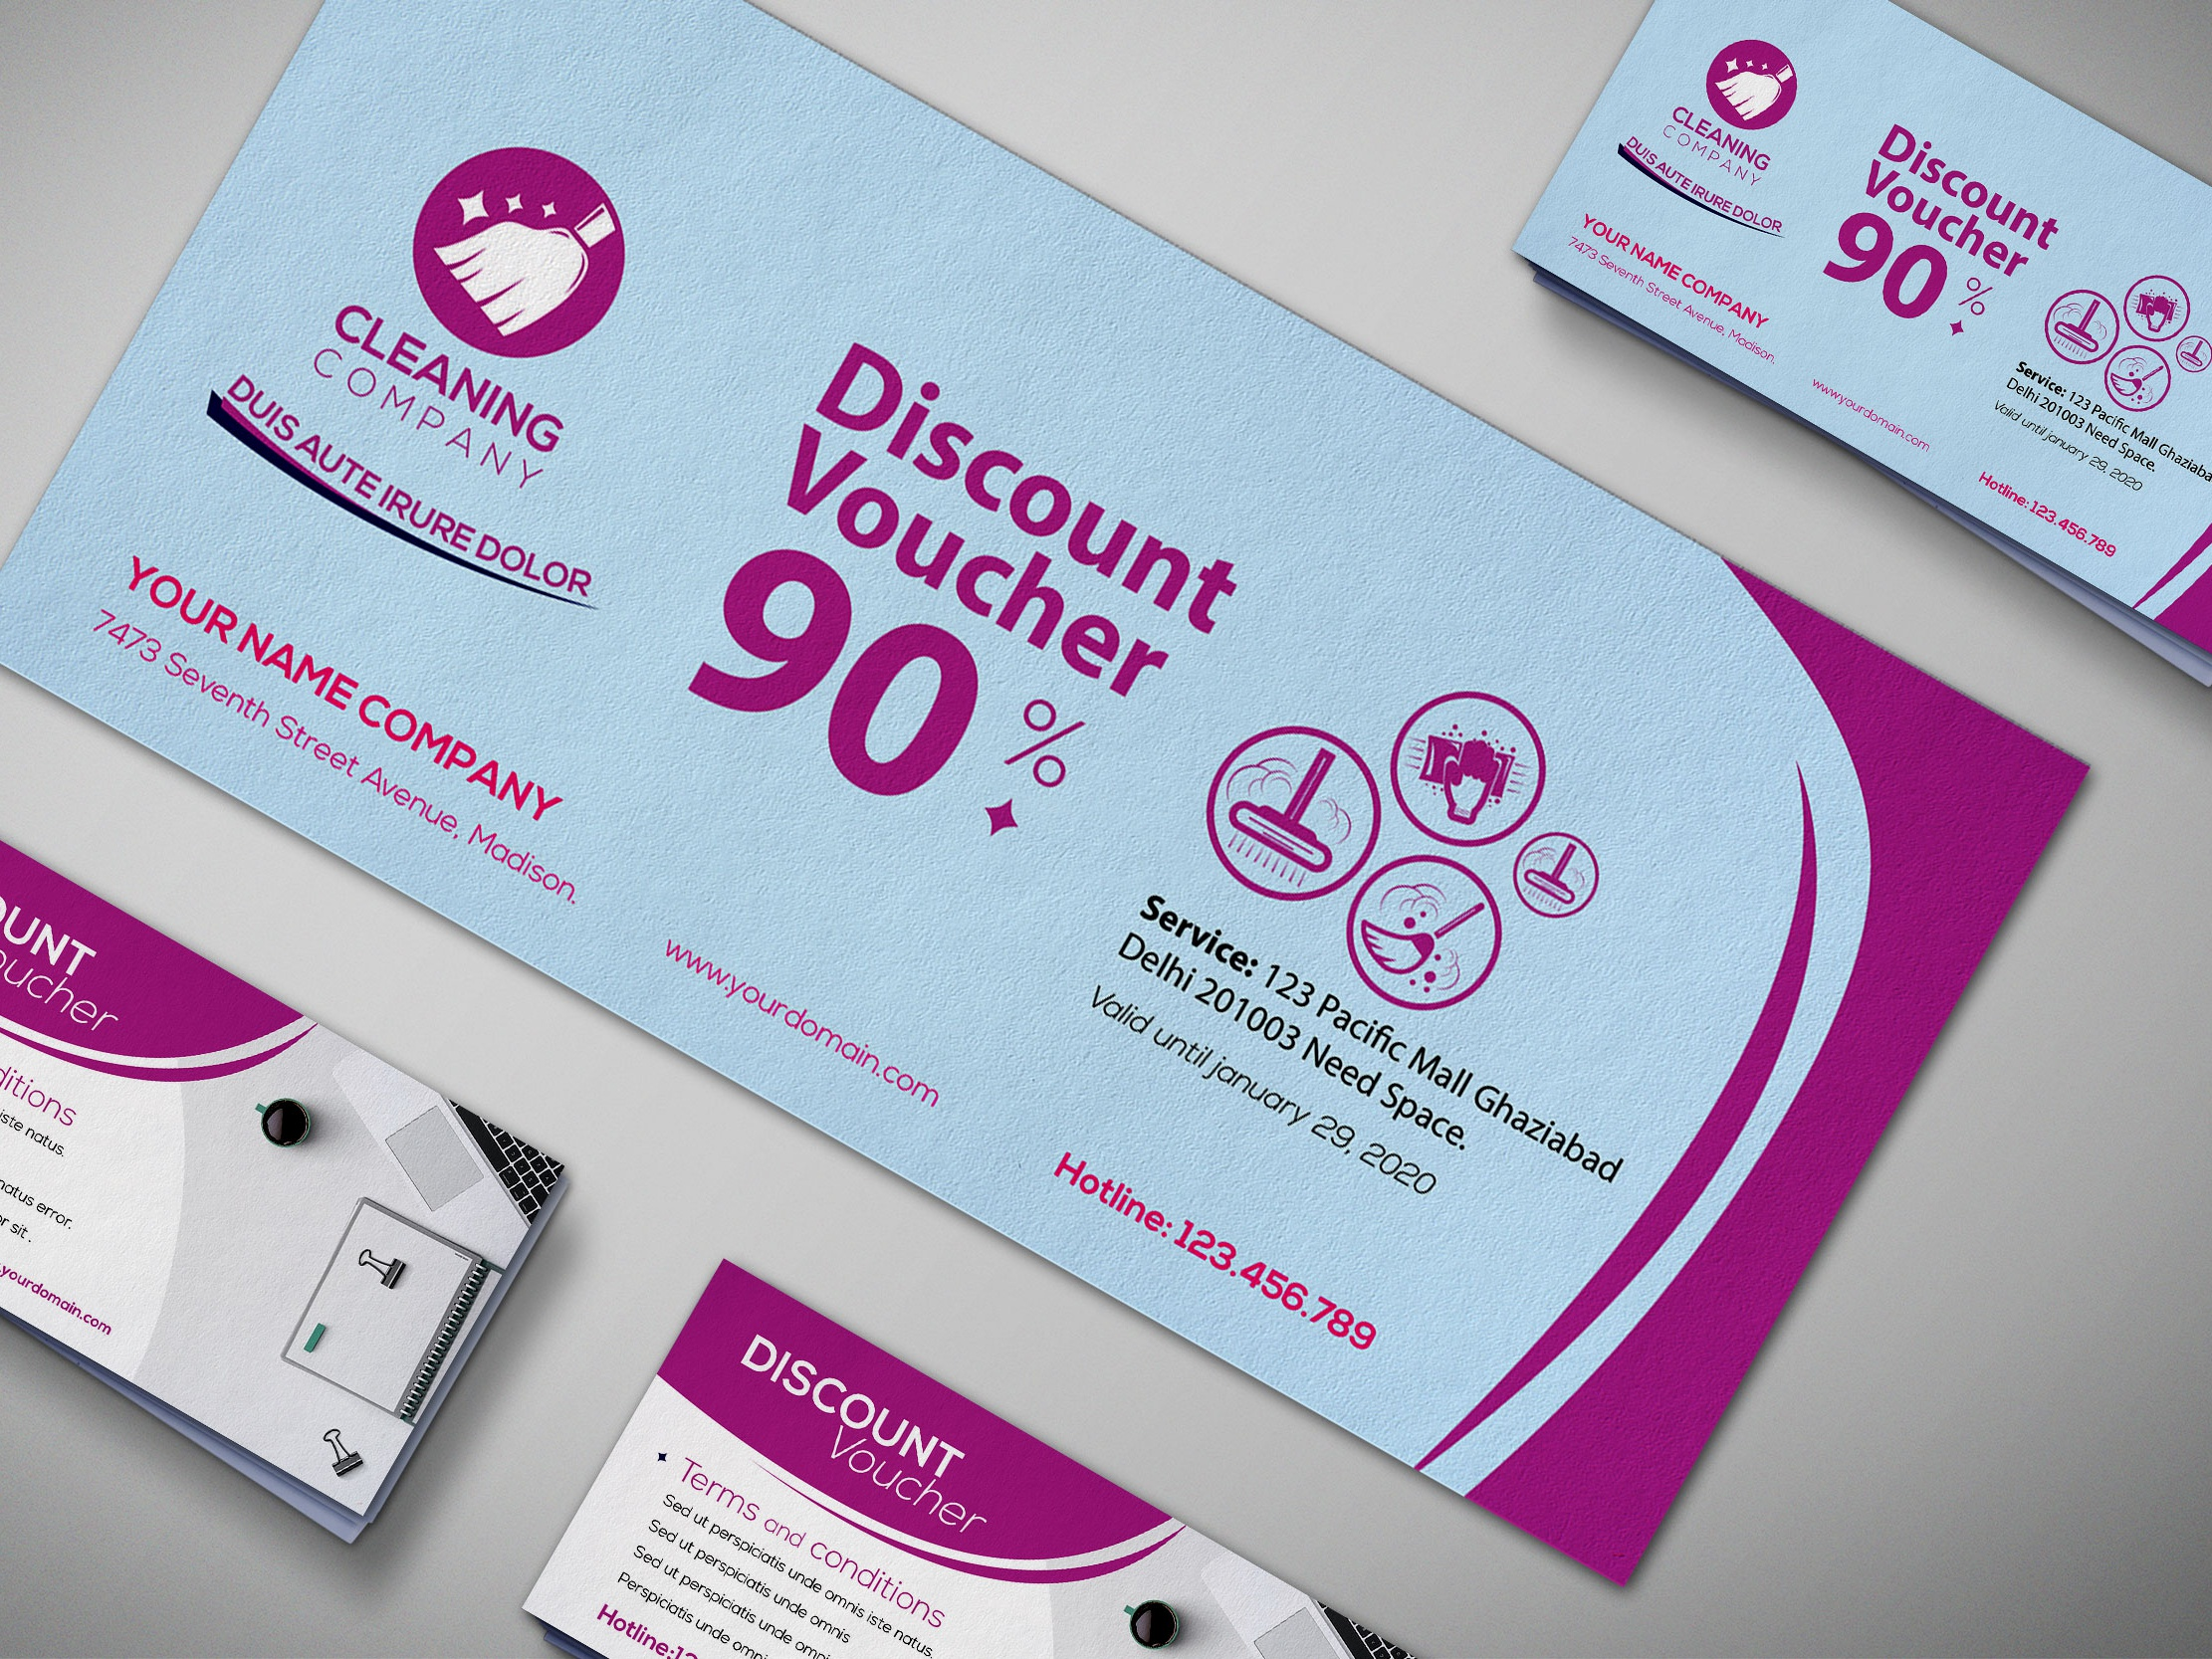 Cleaning service gift voucher design template  5